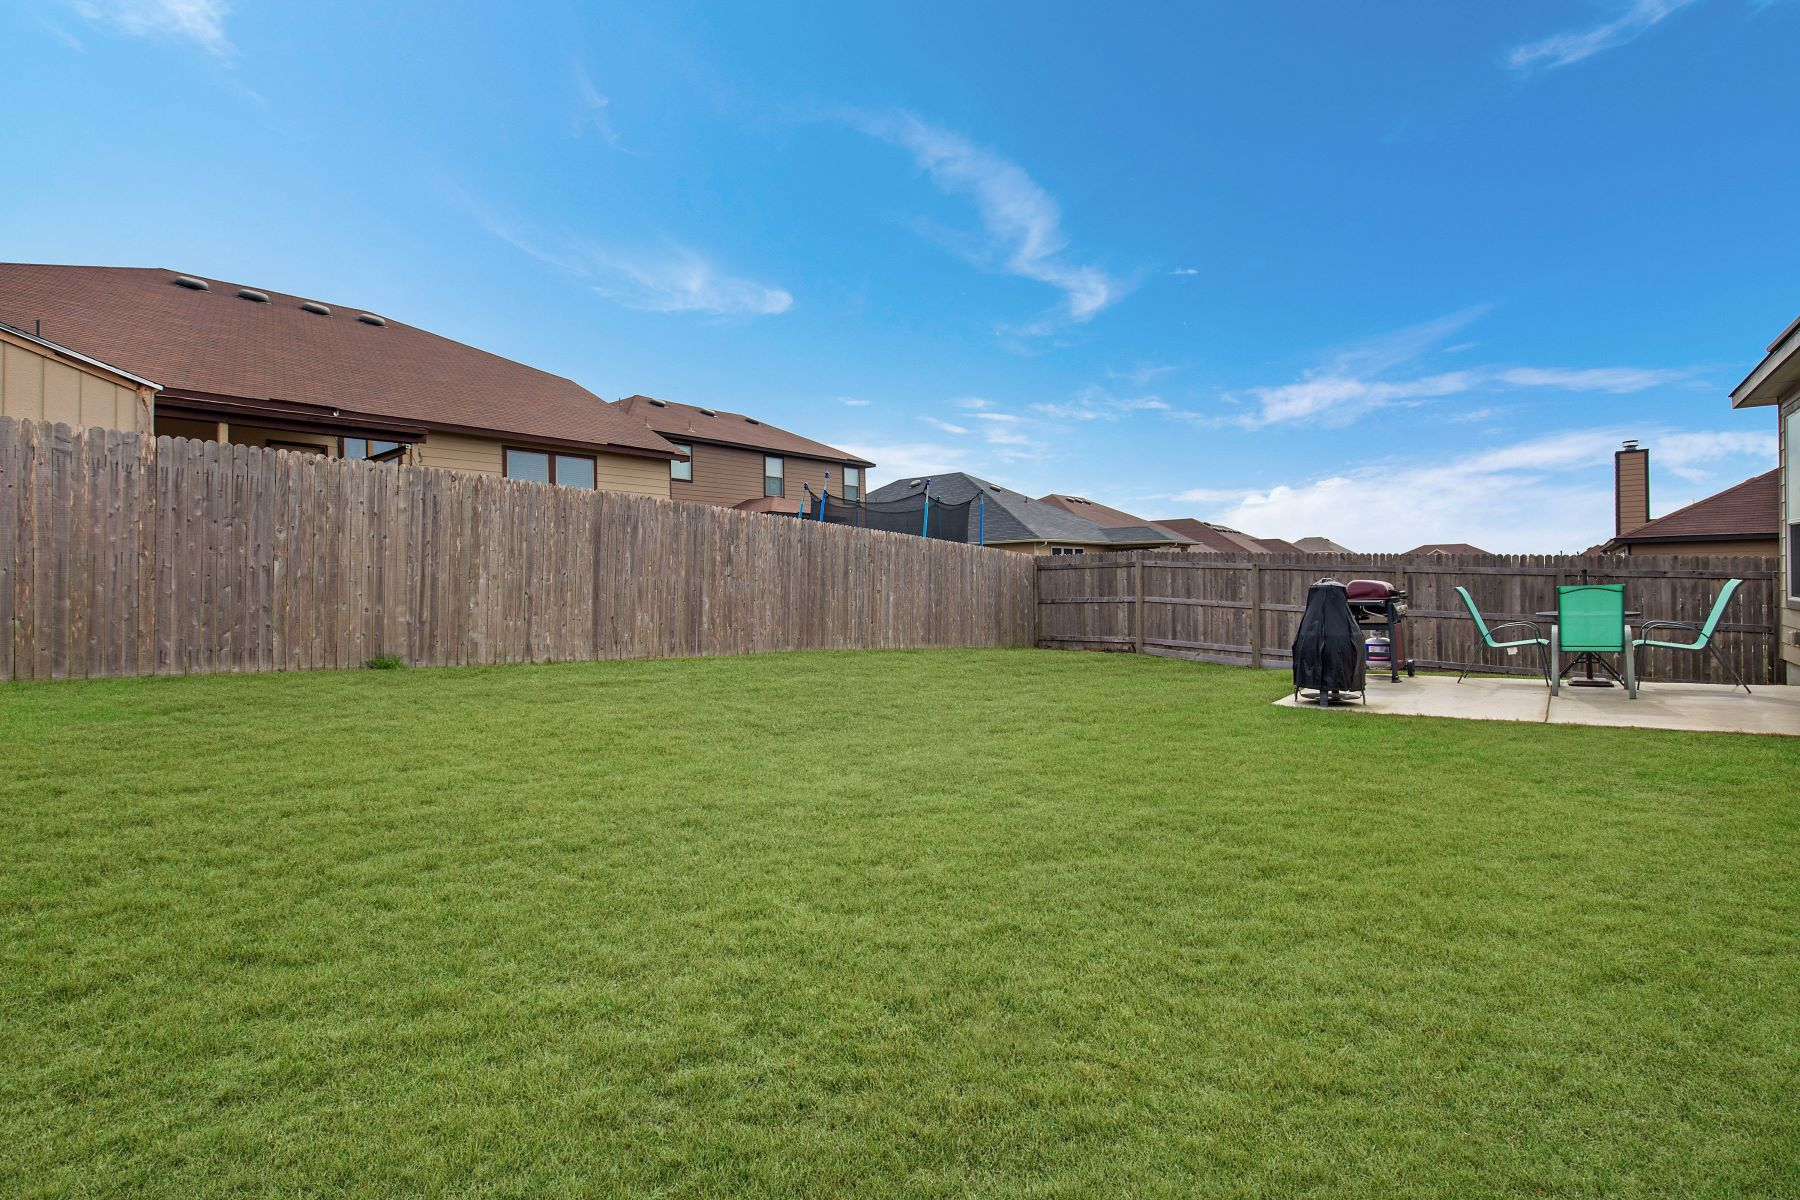 Additional photo for property listing at Exceptional Single-Story Home 128 Landmark Park Cibolo, Texas 78108 United States